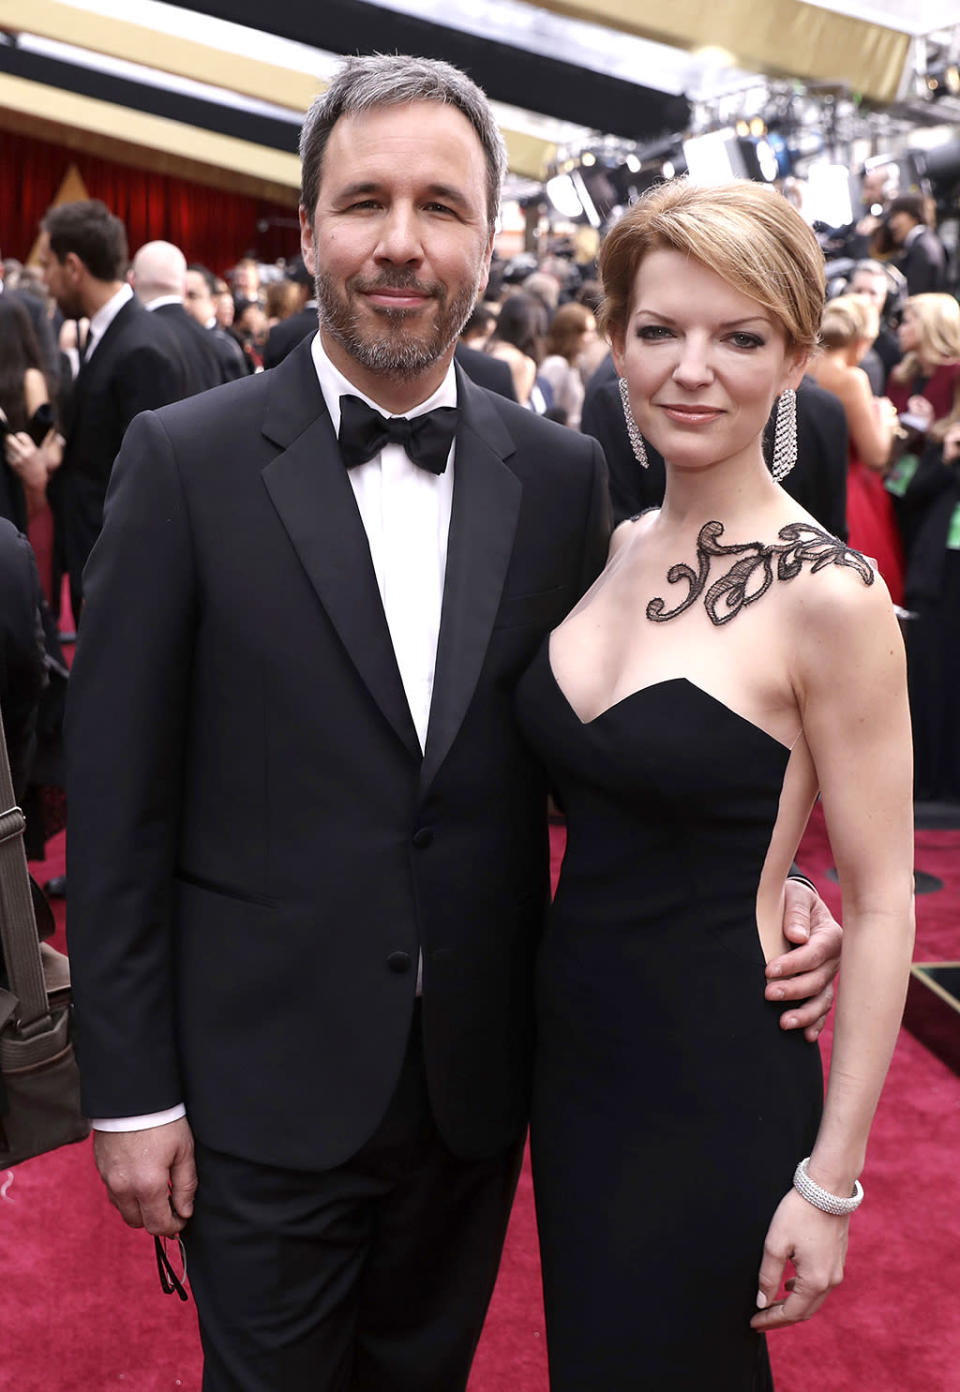 <p>Denis Villeneuve and Tanya Lapointe arrive at the Oscars on Sunday, Feb. 26, 2017, at the Dolby Theatre in Los Angeles. (Photo by Matt Sayles/Invision/AP) </p>